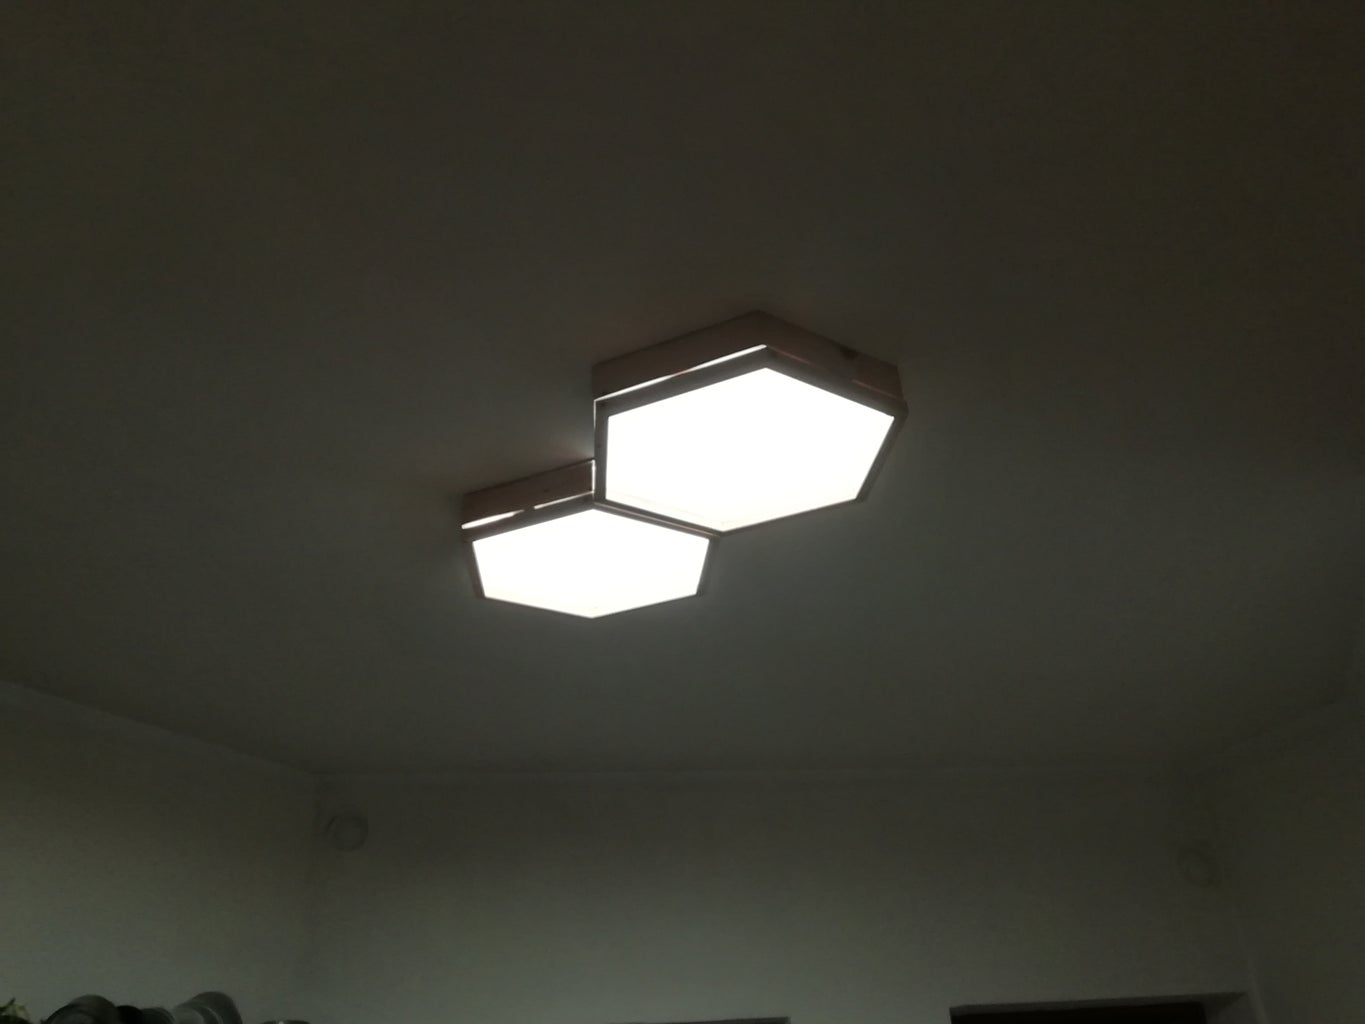 Give New Light to the Room: the Lamp Is Done!